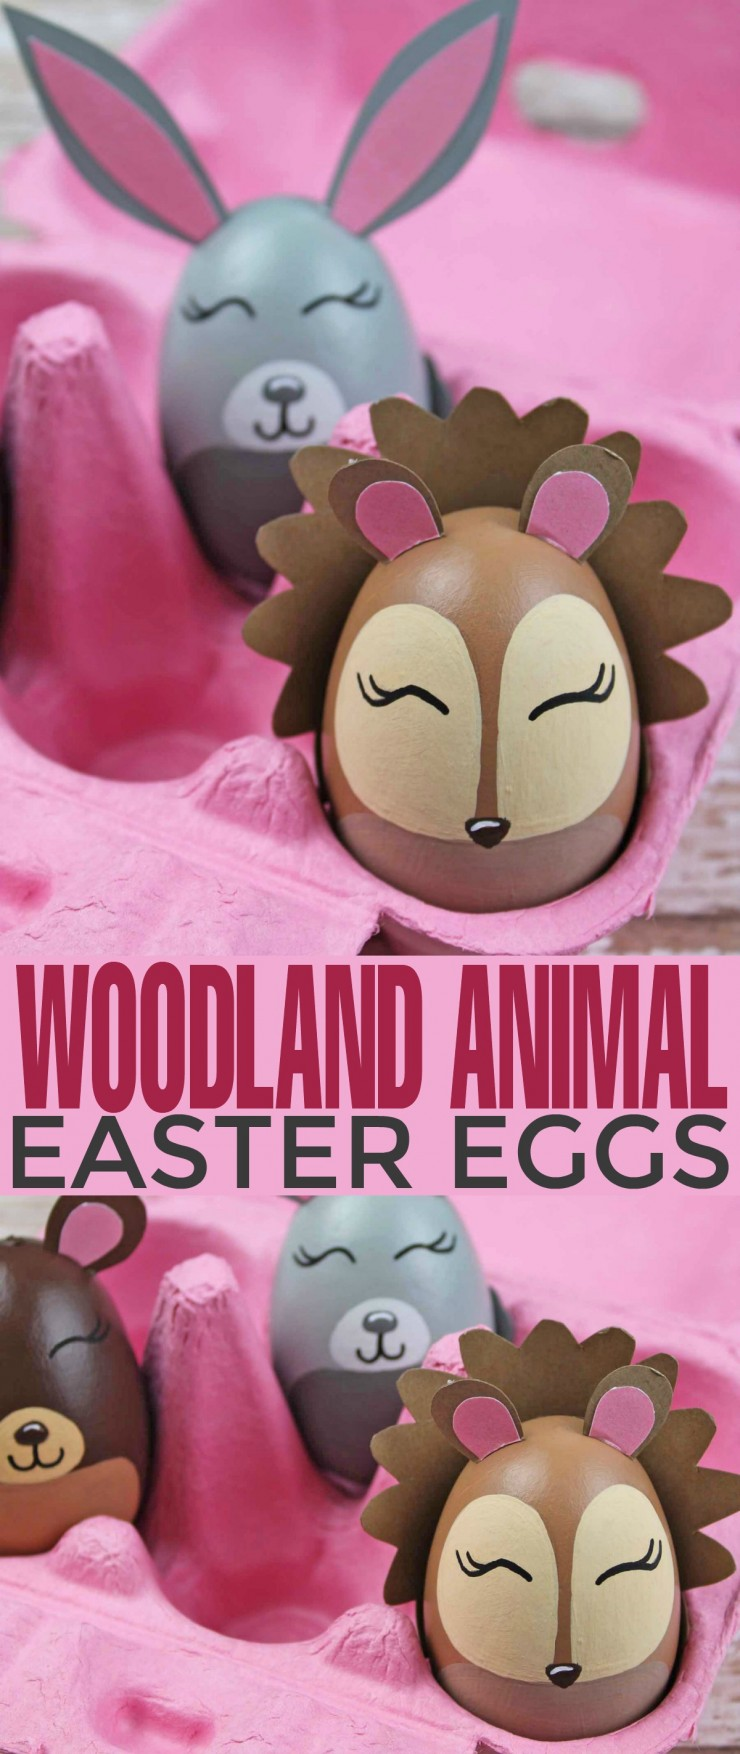 If you're looking for a unique Easter egg decorating idea  then these adorable Woodland Animal Easter Eggs are perfect. This set of Easter egg animal designs are gorgeous and are surprisingly easy to make thanks to the free.